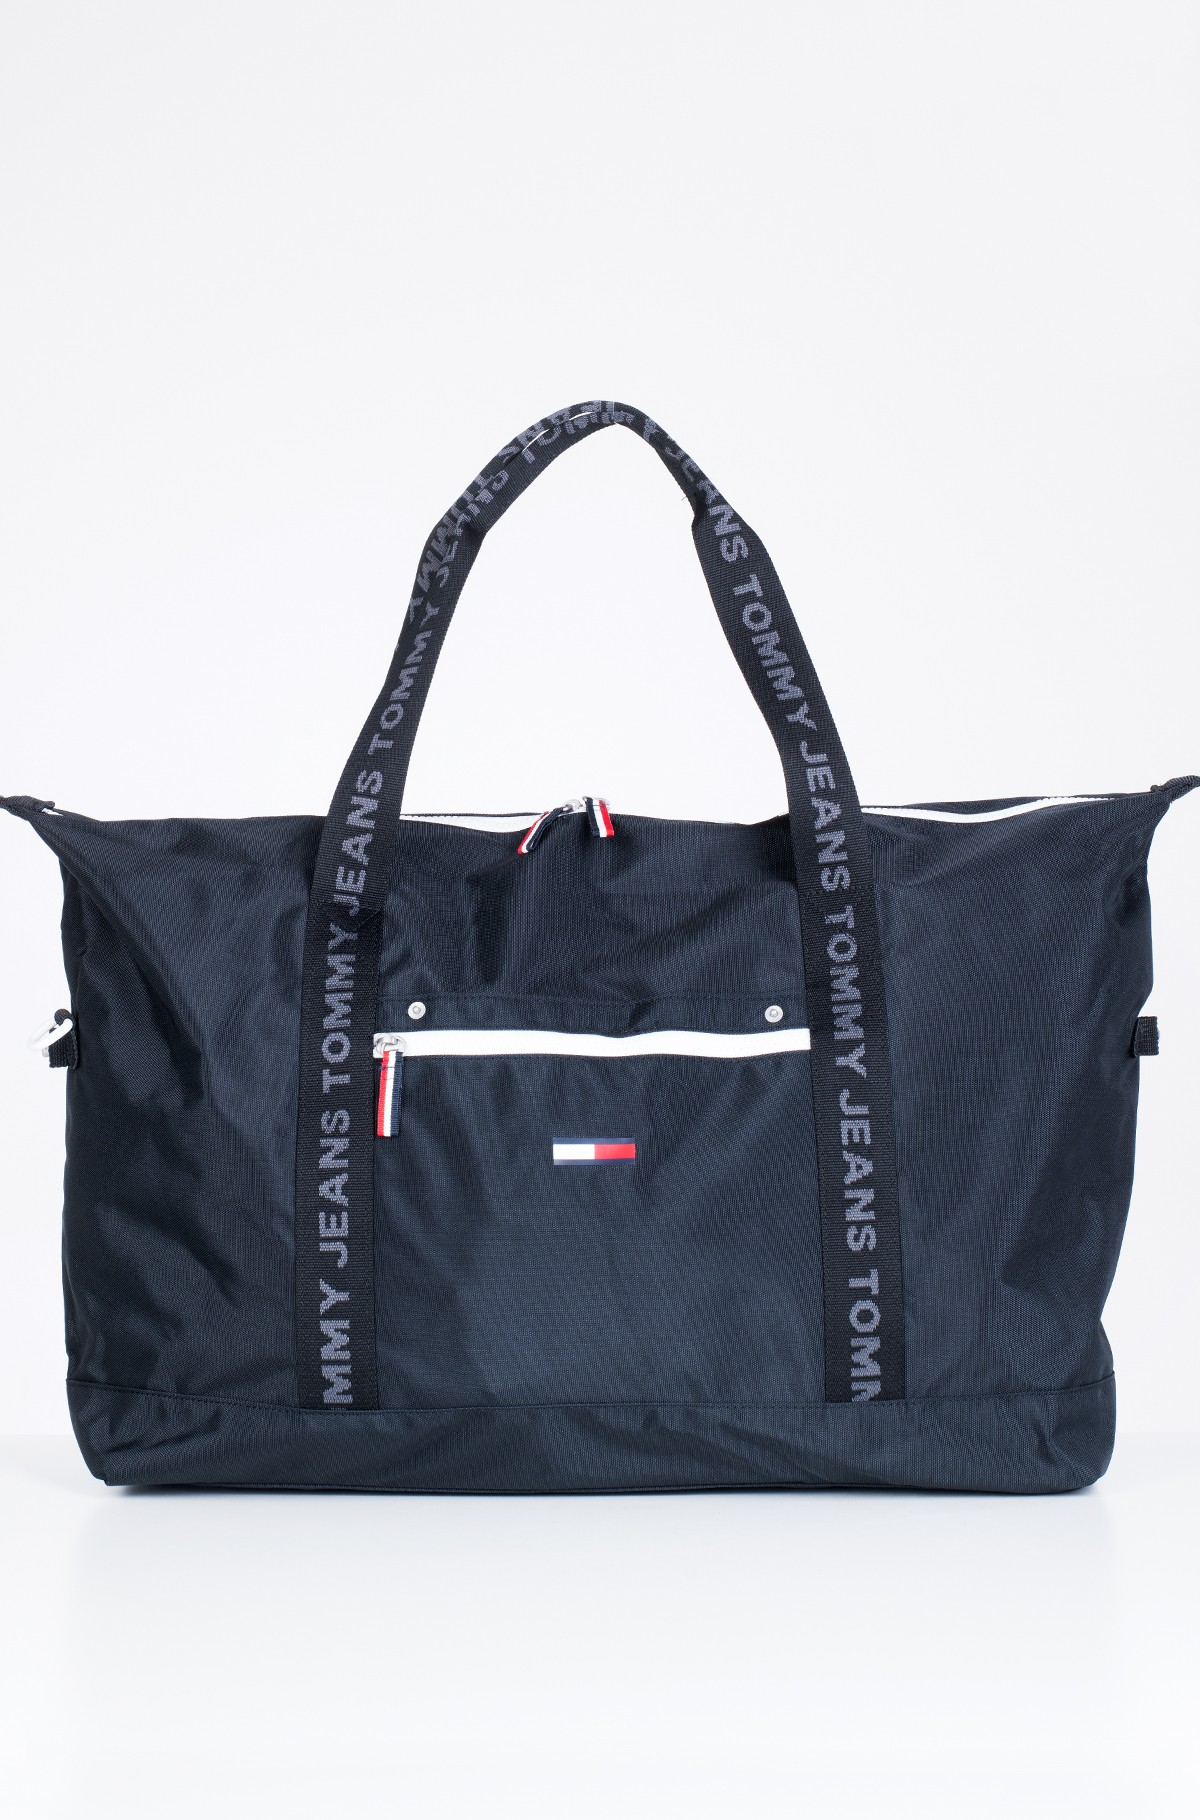 Spordikott TJM COOL CITY DUFFLE NYL-full-1